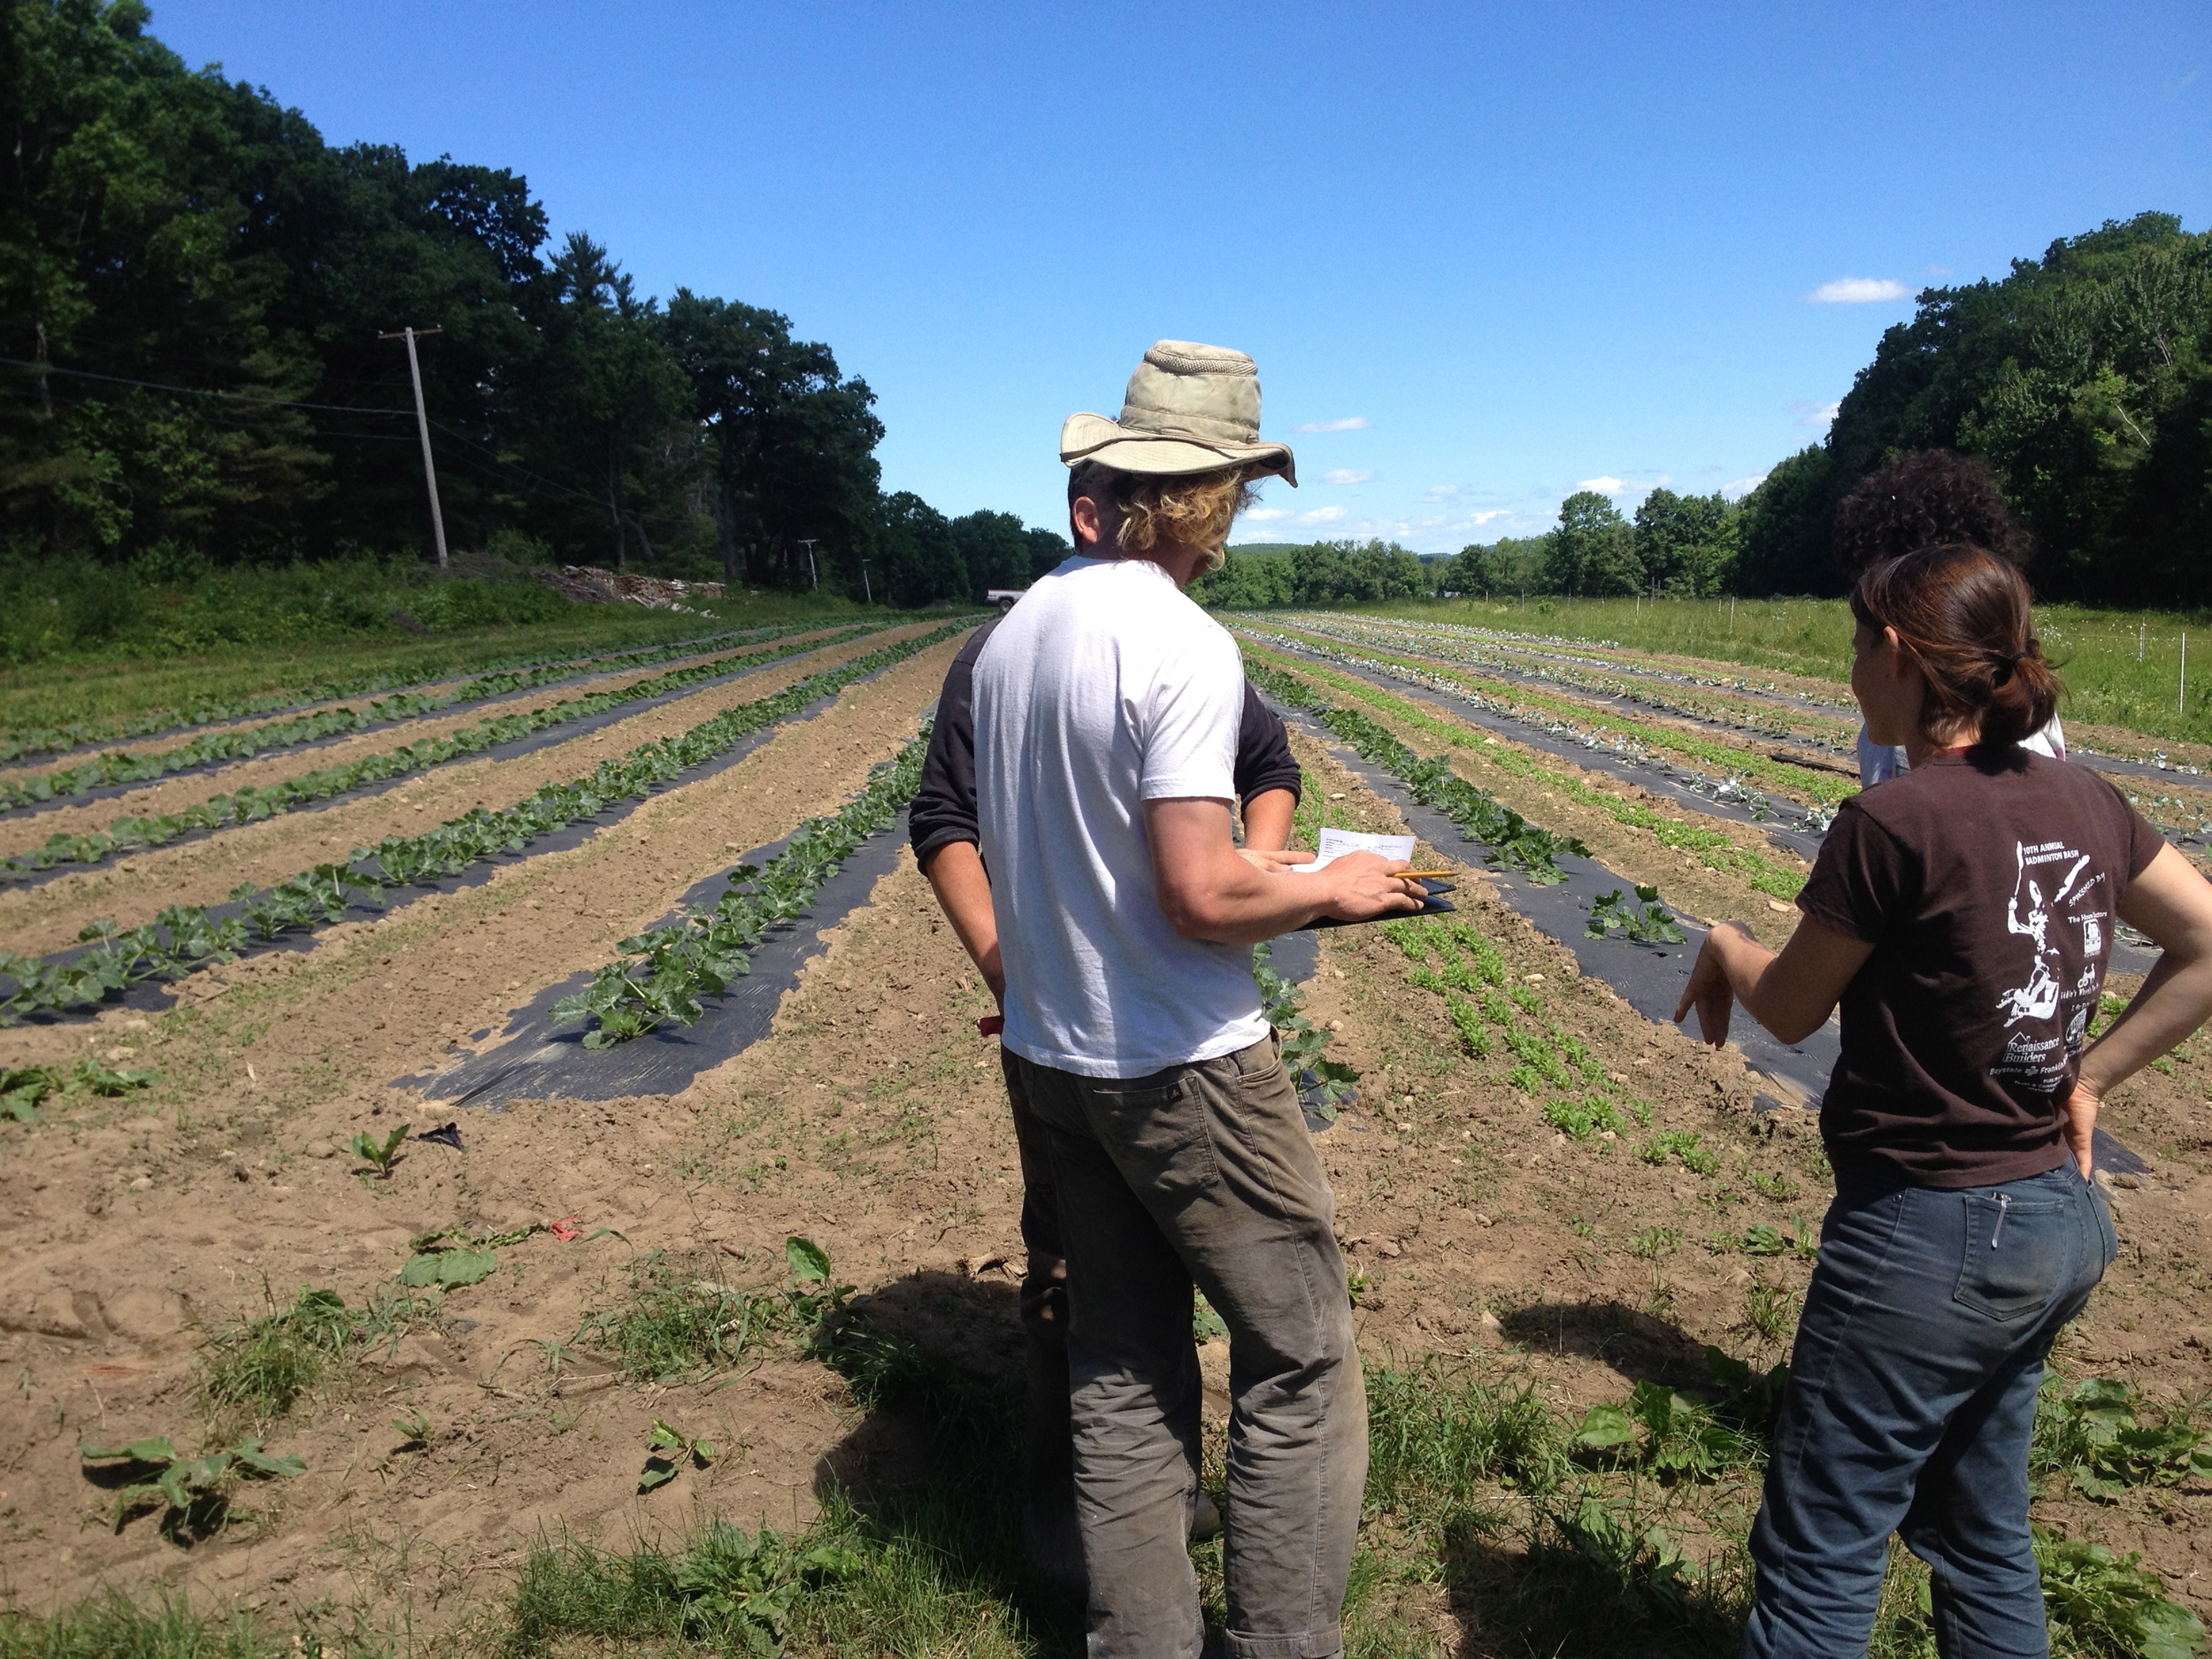 Investigating our growing pest and disease issues with Katie, an expert from the UMass Ag Extension Agency.